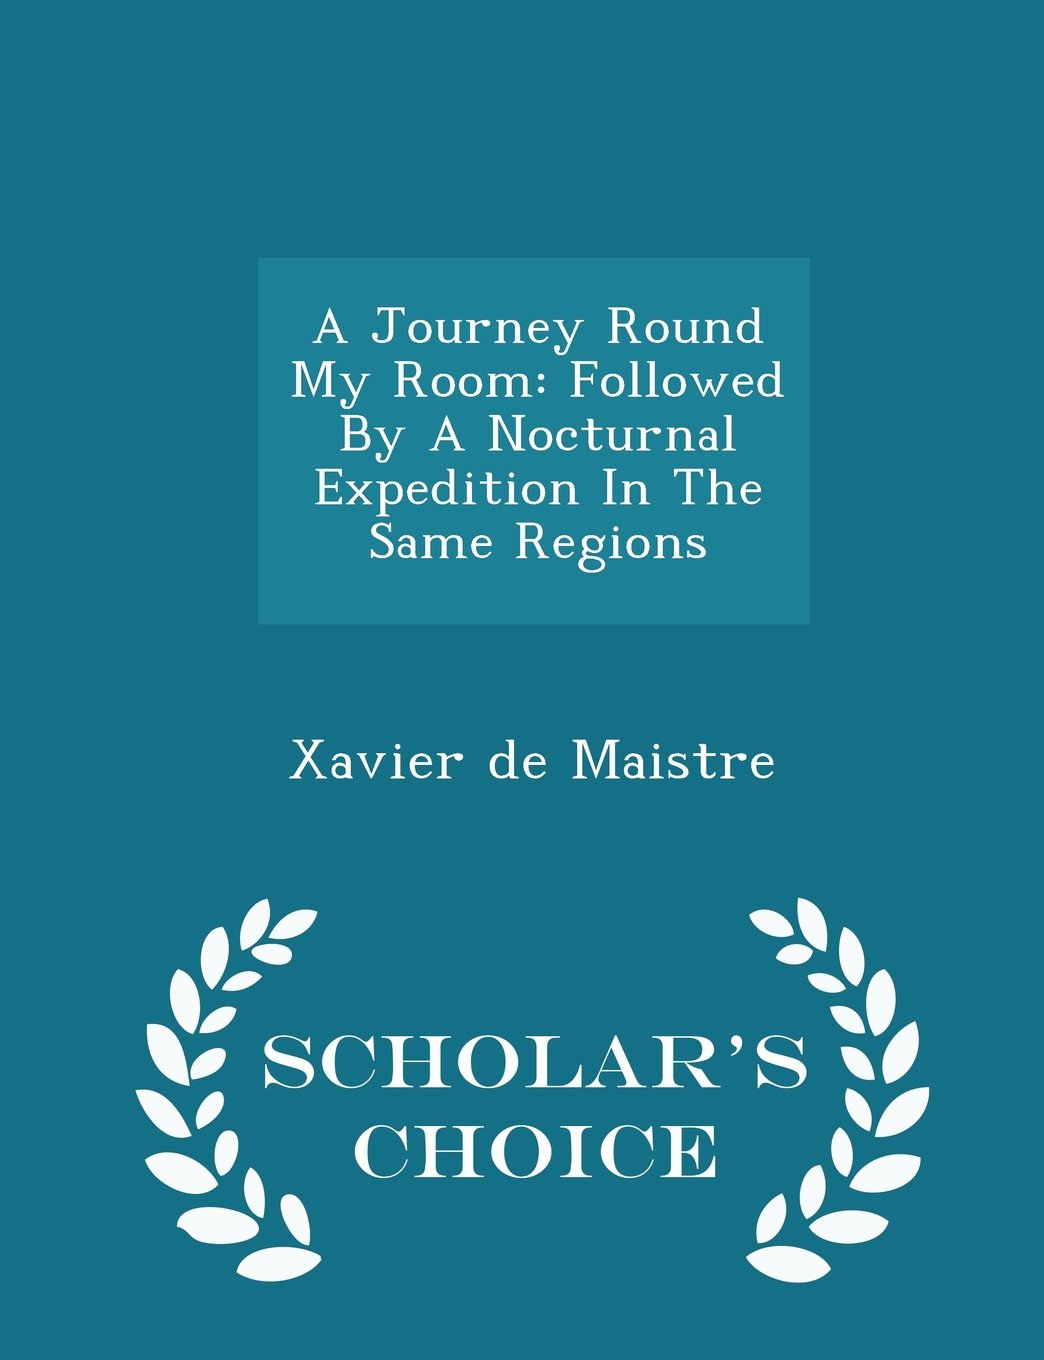 Download A Journey Round My Room: Followed By A Nocturnal Expedition In The Same Regions - Scholar's Choice Edition PDF